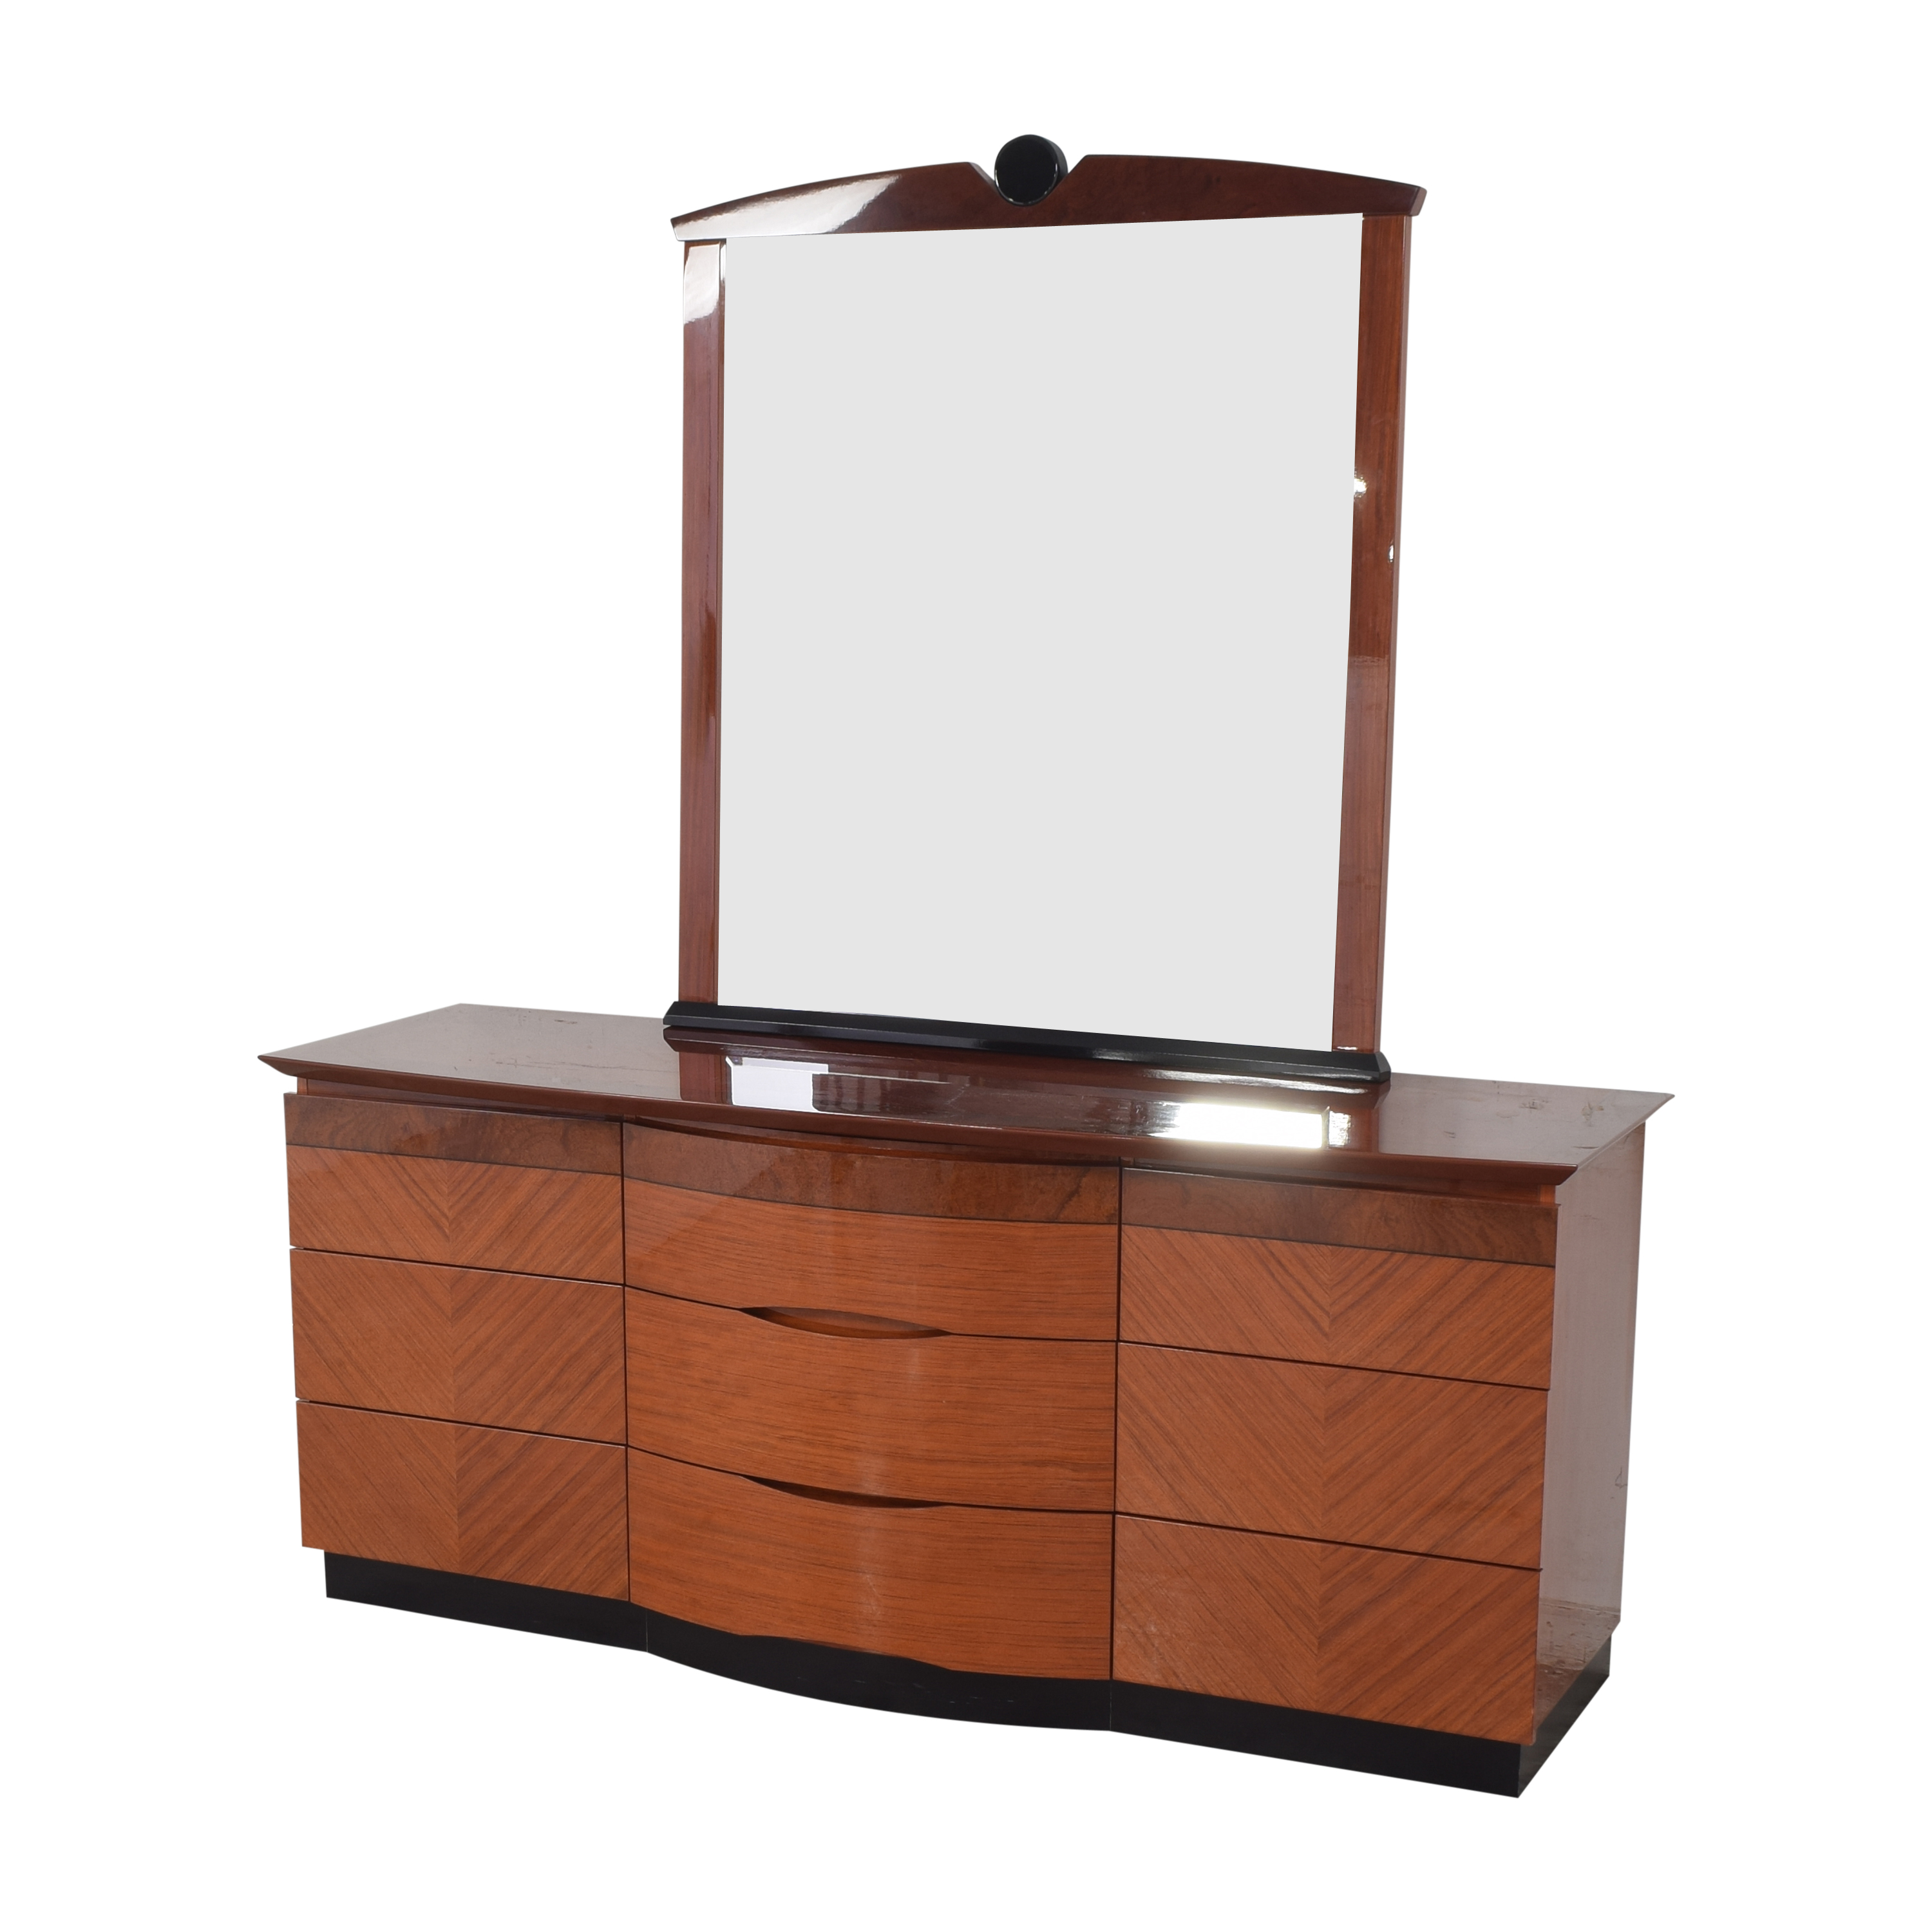 Triple Dresser with Mirror dimensions